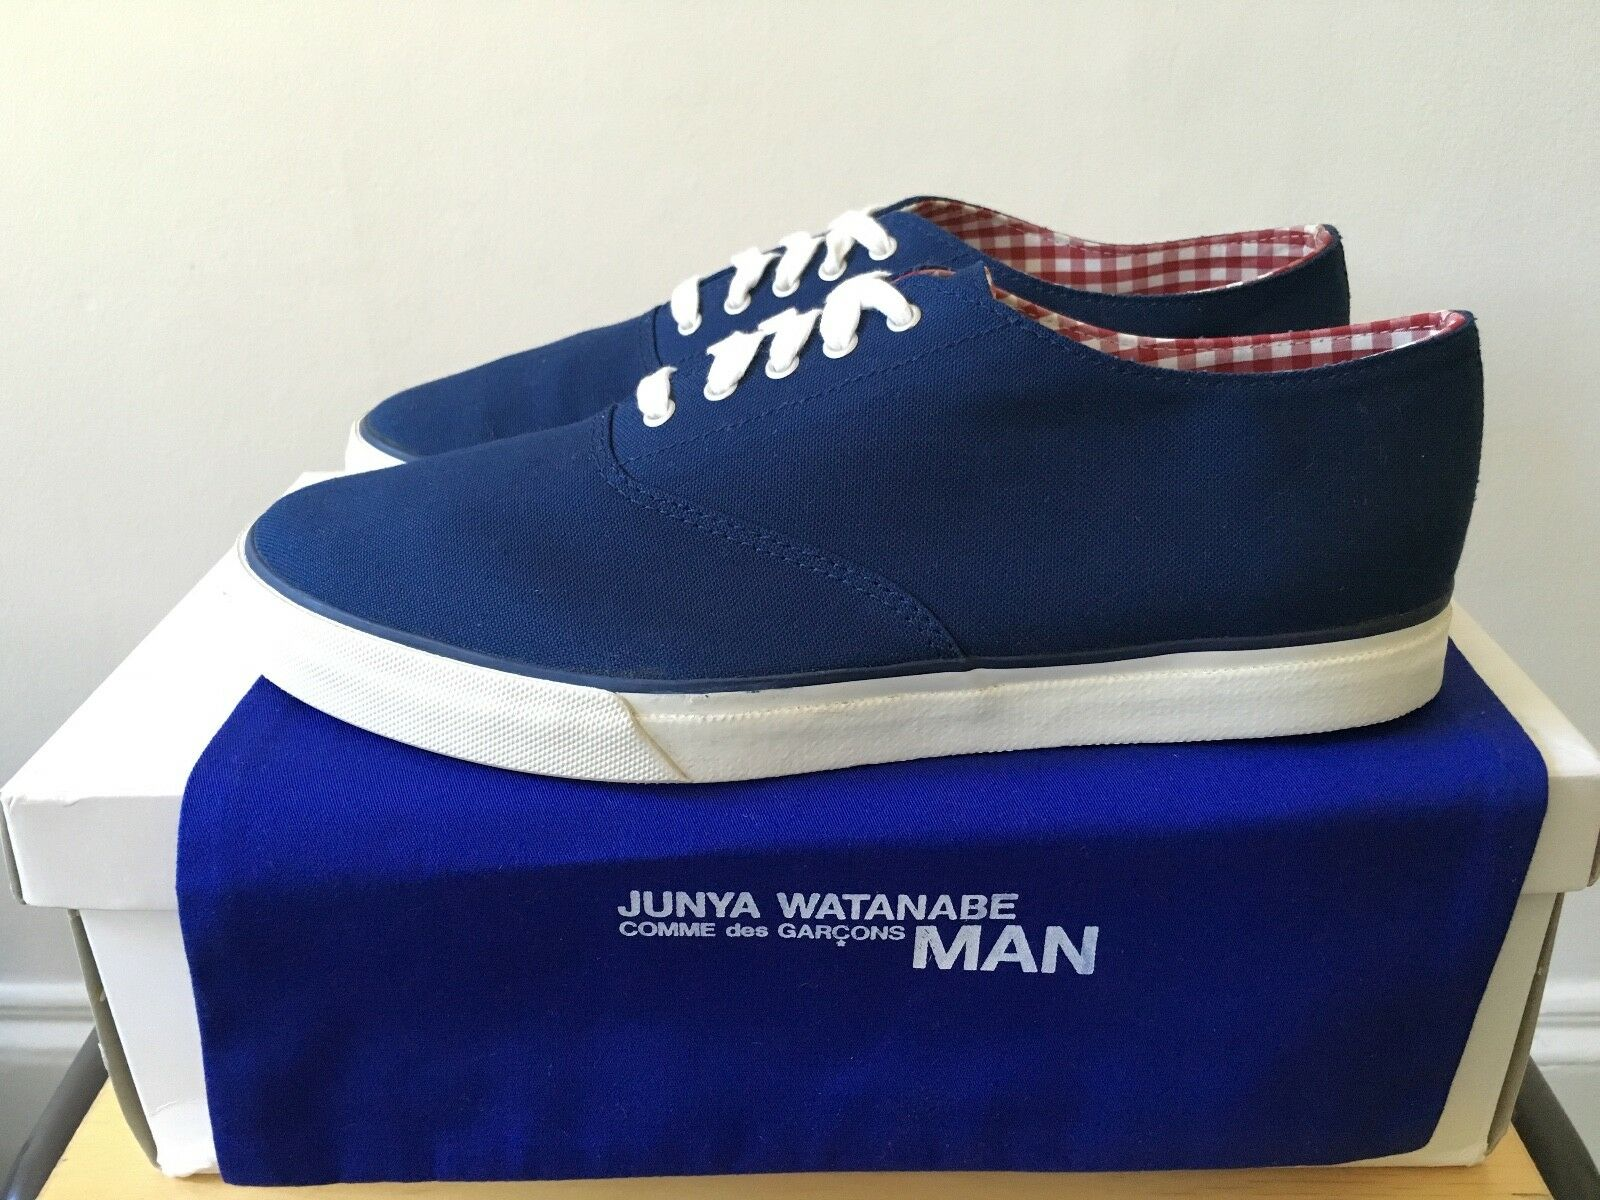 New Navy White JUNYA WATANABE MAN Canvas COMME Sneakers COMME Canvas DES GARCONS Trainers 40 9dbc95